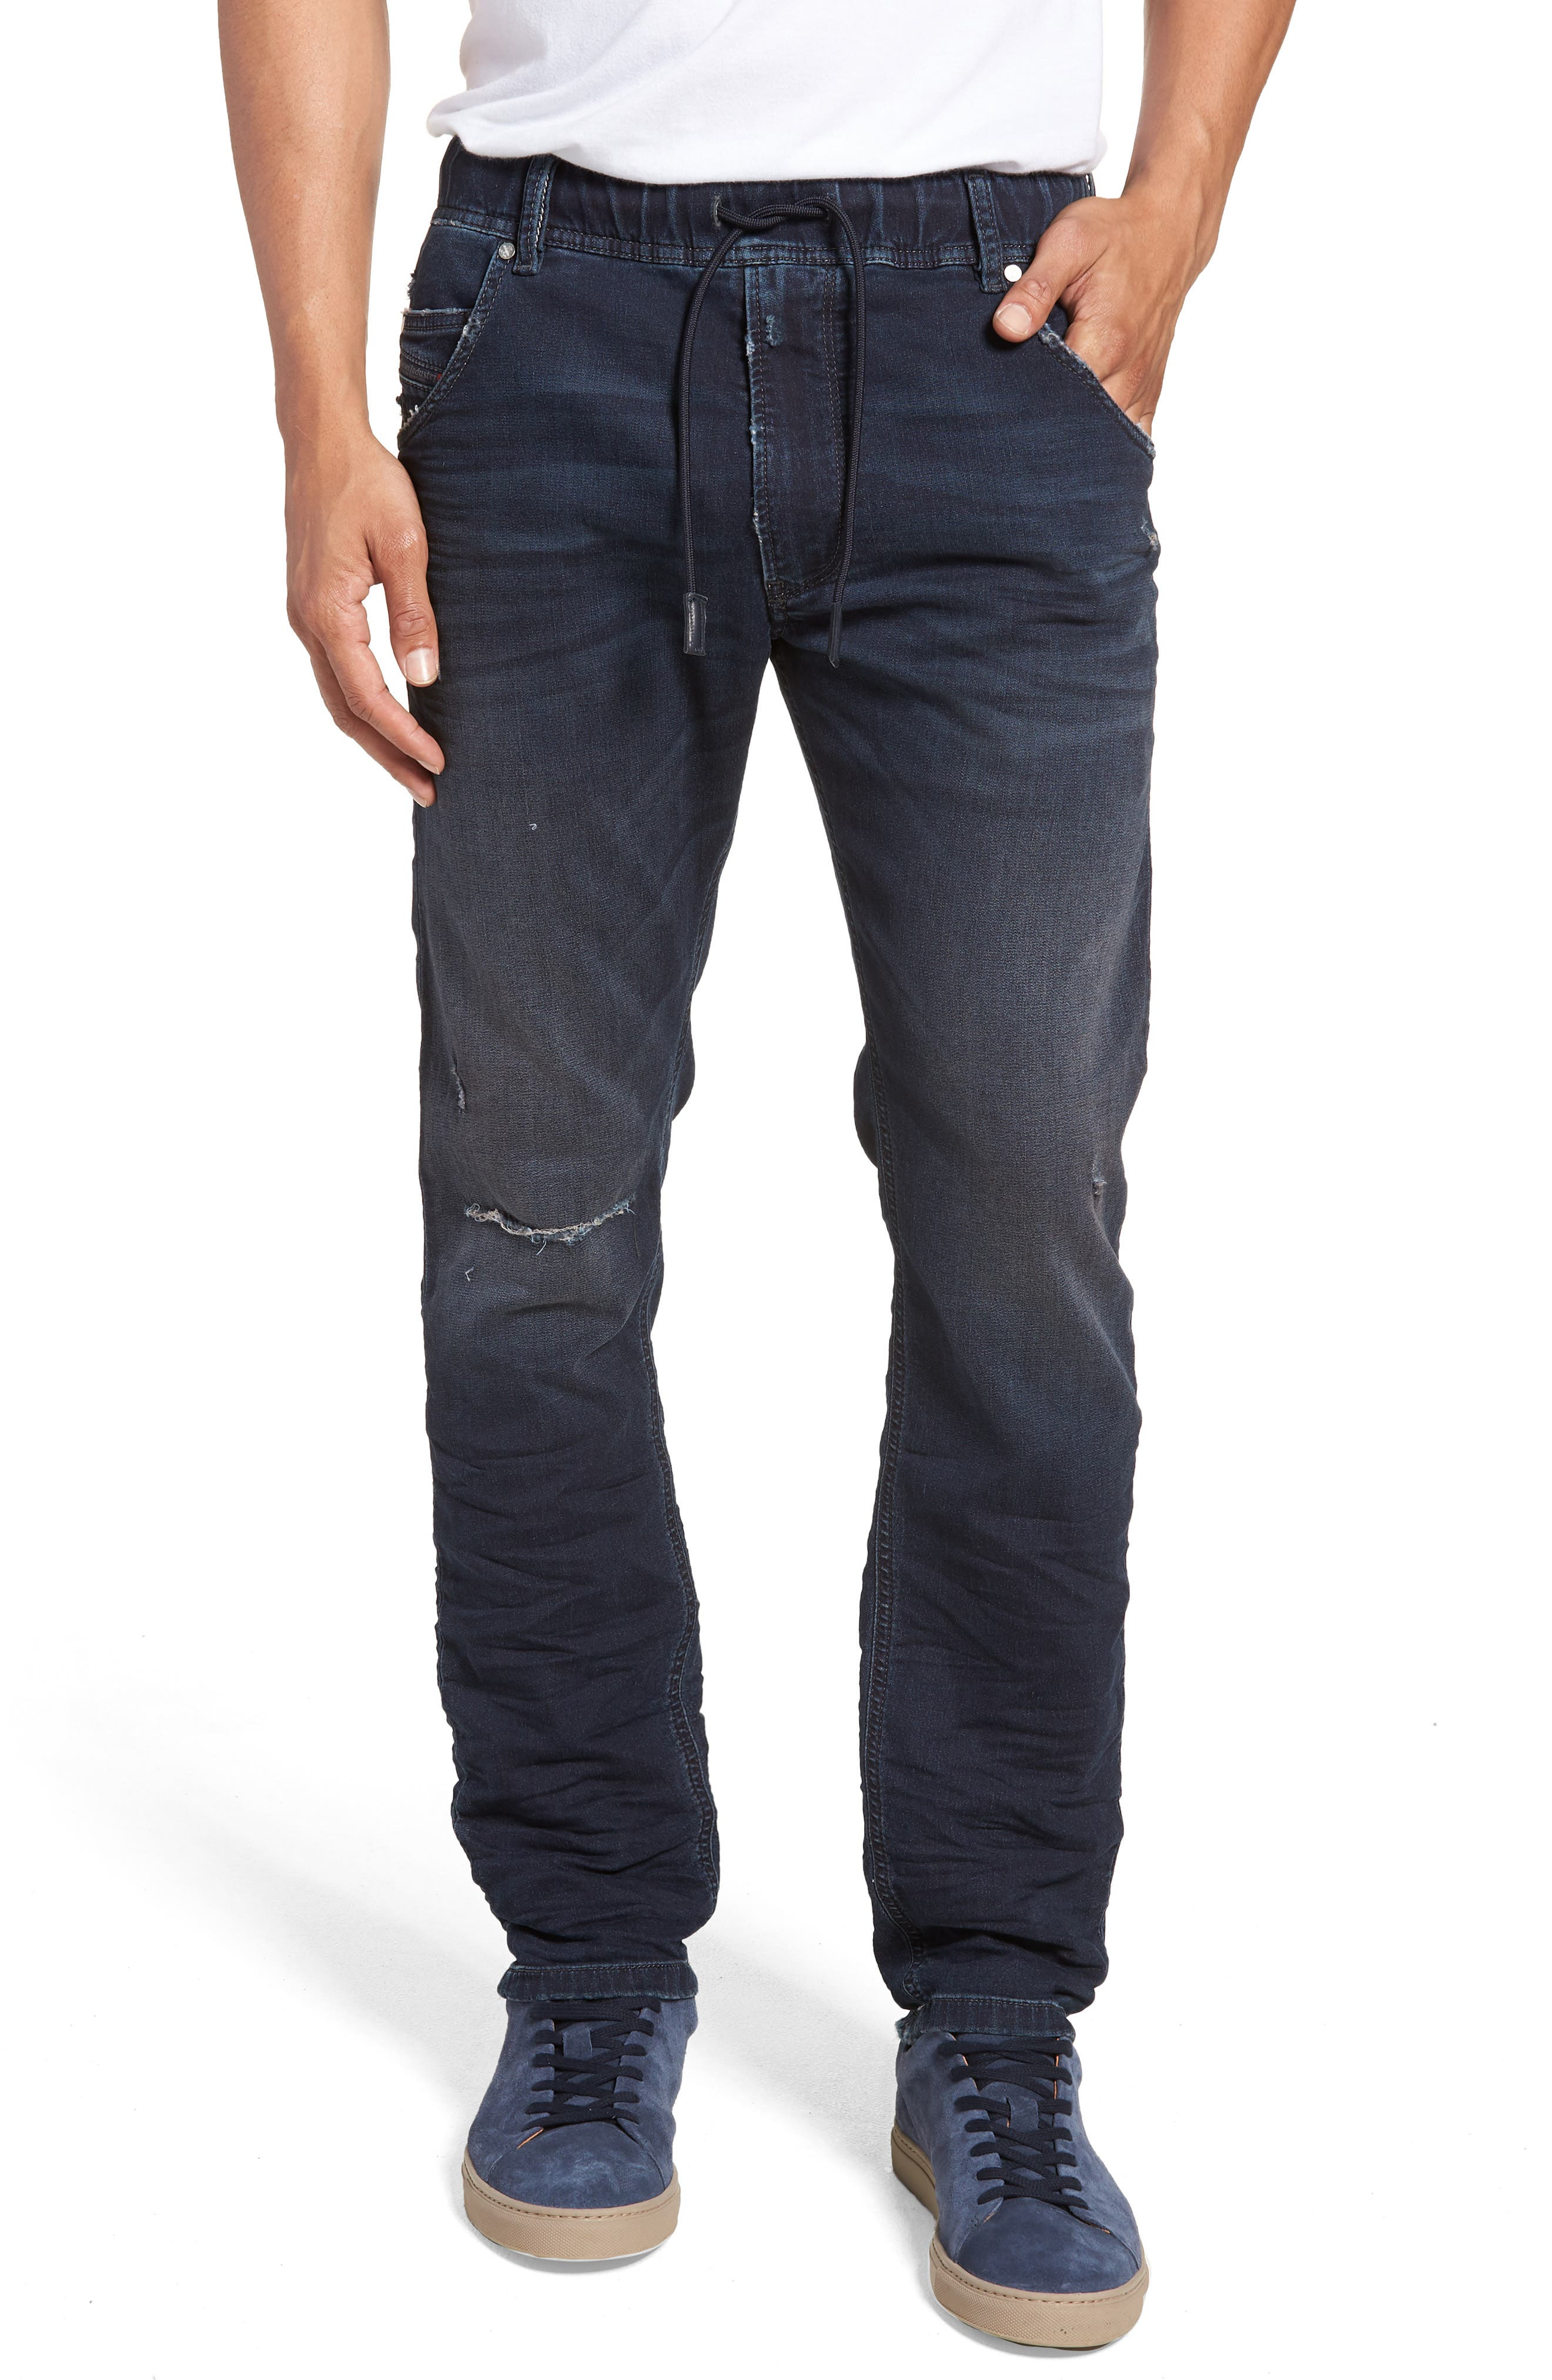 Krooley Skinny Slouchy Fit Jeans,                             Main thumbnail 1, color,                             0699W